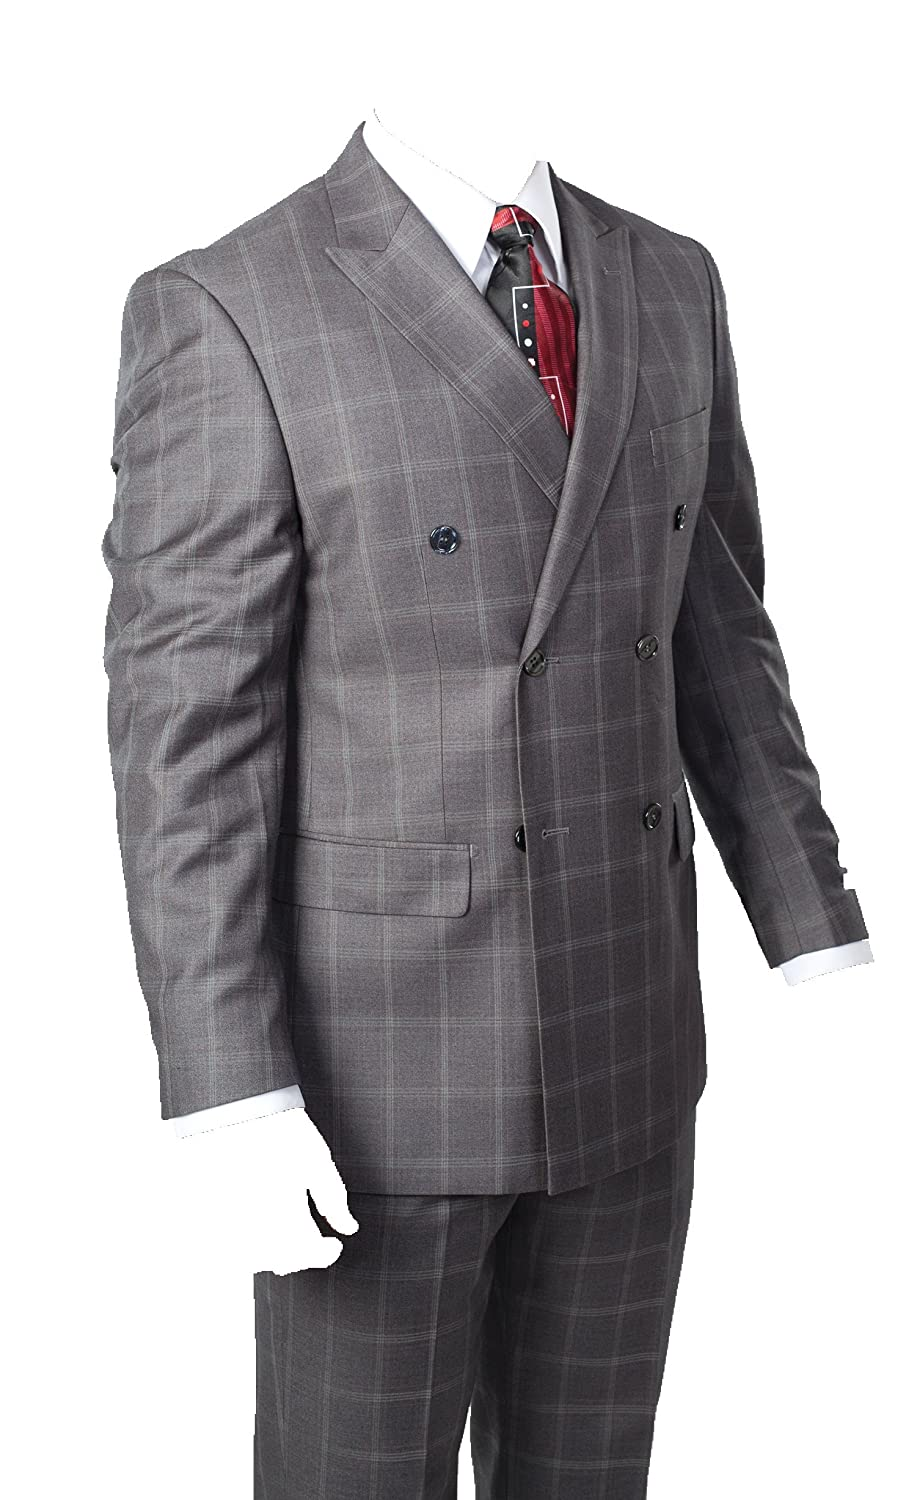 1940s Men's Suit History and Styling Tips Mens Two Piece Windowpane Plaid Suit (Grey) $119.00 AT vintagedancer.com